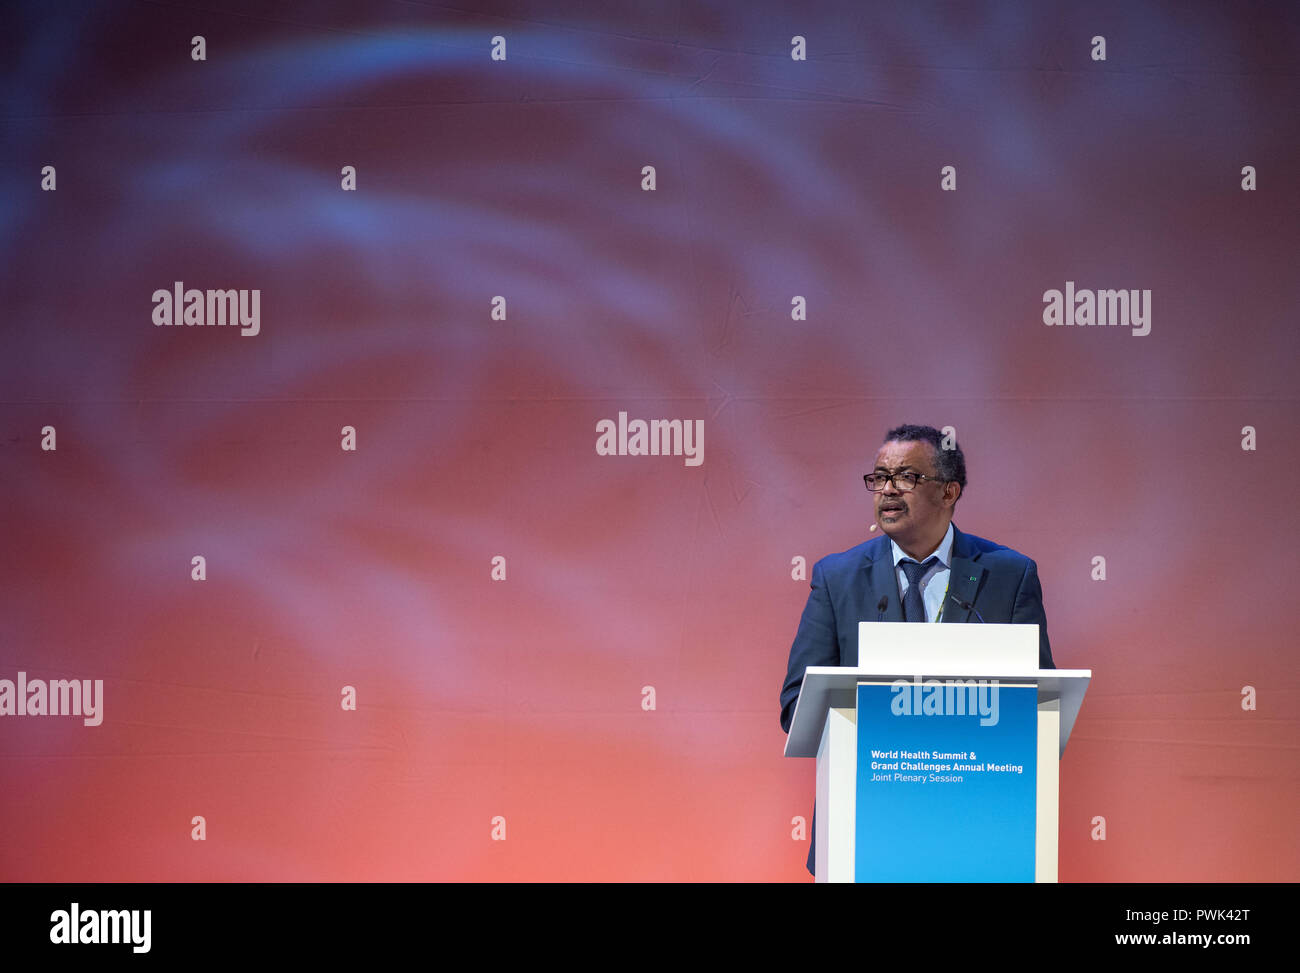 Berlin, Germany. 16 October 2018, Berlin: 16 October 2018, Germany, Berlin:Tedros Adhanom Ghebreyesus, Director General of the World Health Organization (WHO), will speak at the closing event of the World Health Summit 2018. 2,000 participants and 300 speakers from 100 countries discussed pressing issues of global health care and the prevention of preventable diseases at the three-day event. Photo: Bernd von Jutrczenka/dpa Credit: dpa picture alliance/Alamy Live News - Stock Image